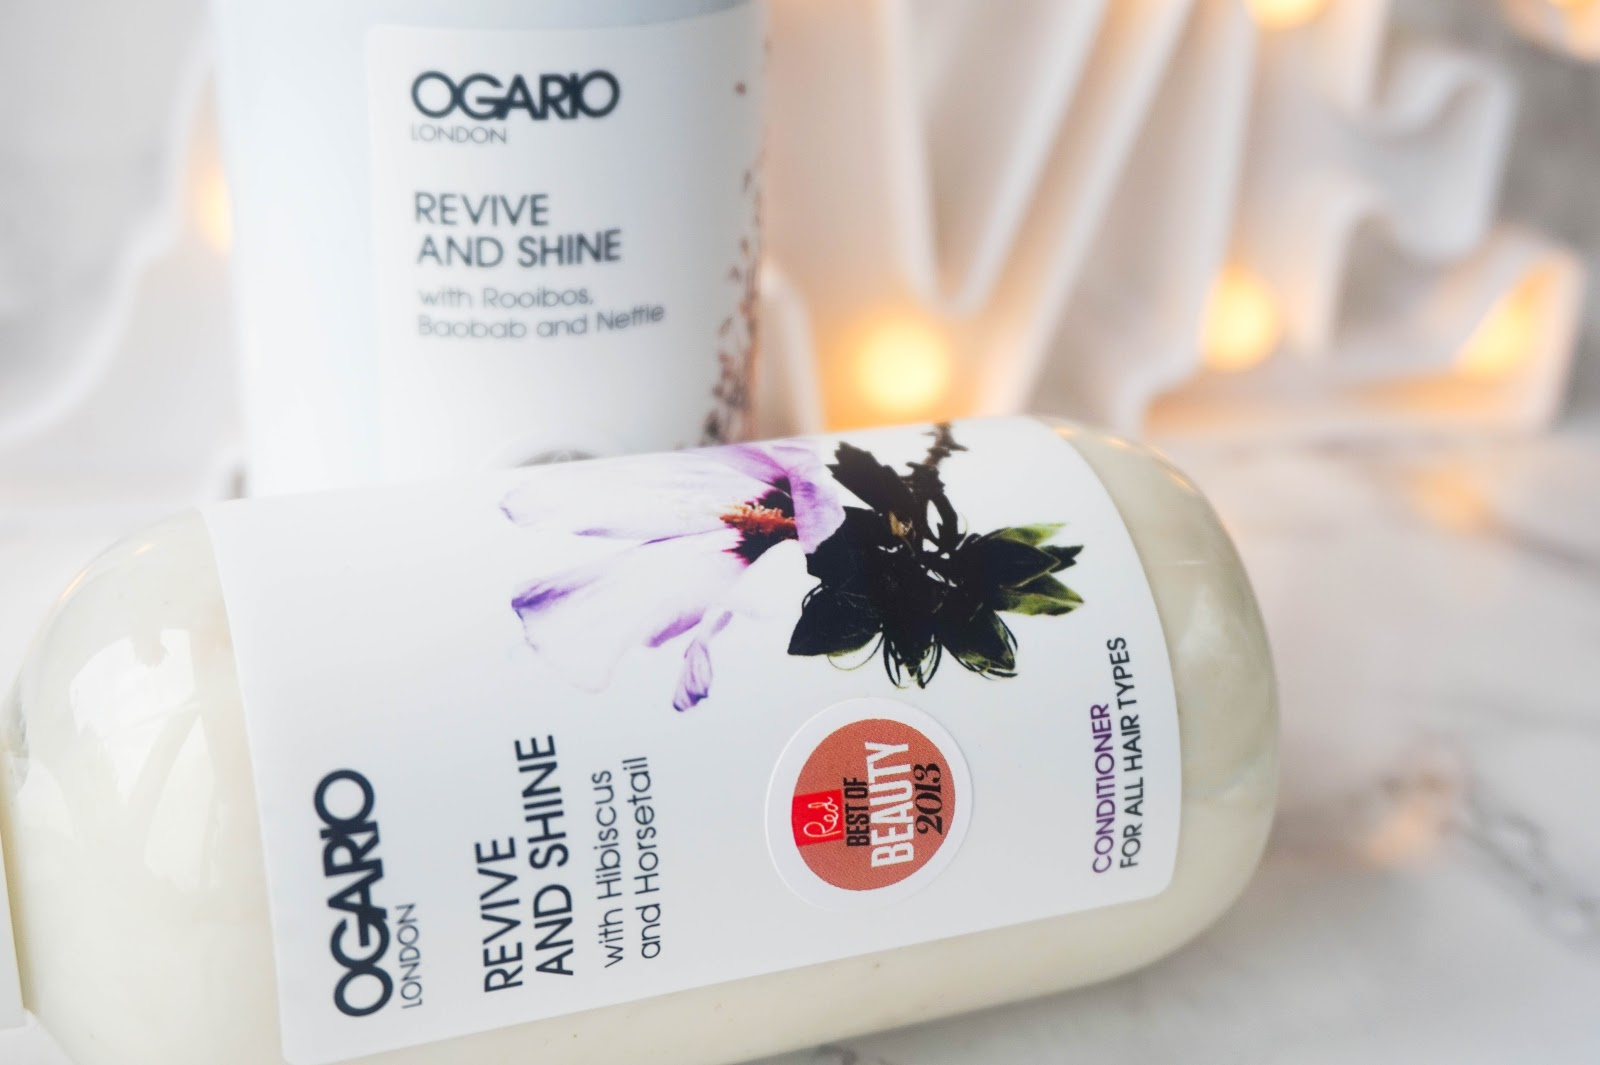 New Body Care Products on Trial, Ogario London